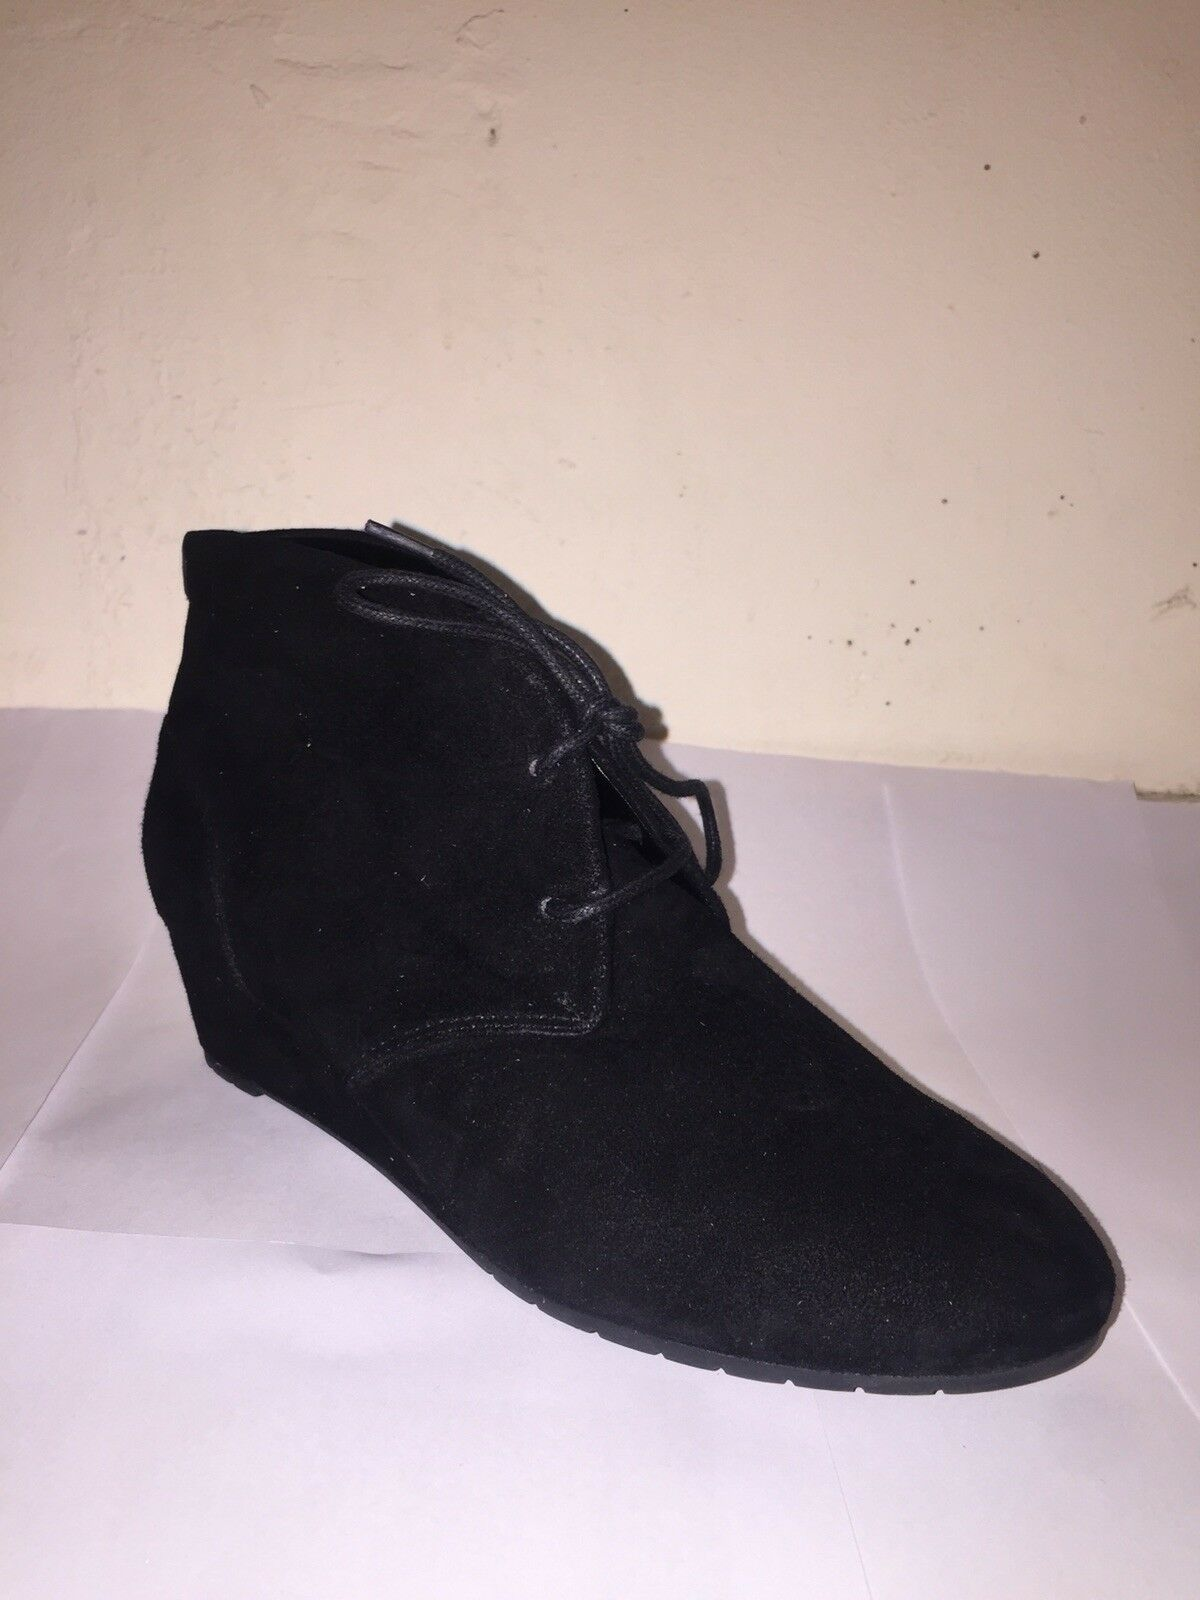 9fbcb90c NEW Clarks Vendra Peak Ladies Black Suede Ankle Boots Wedge ...